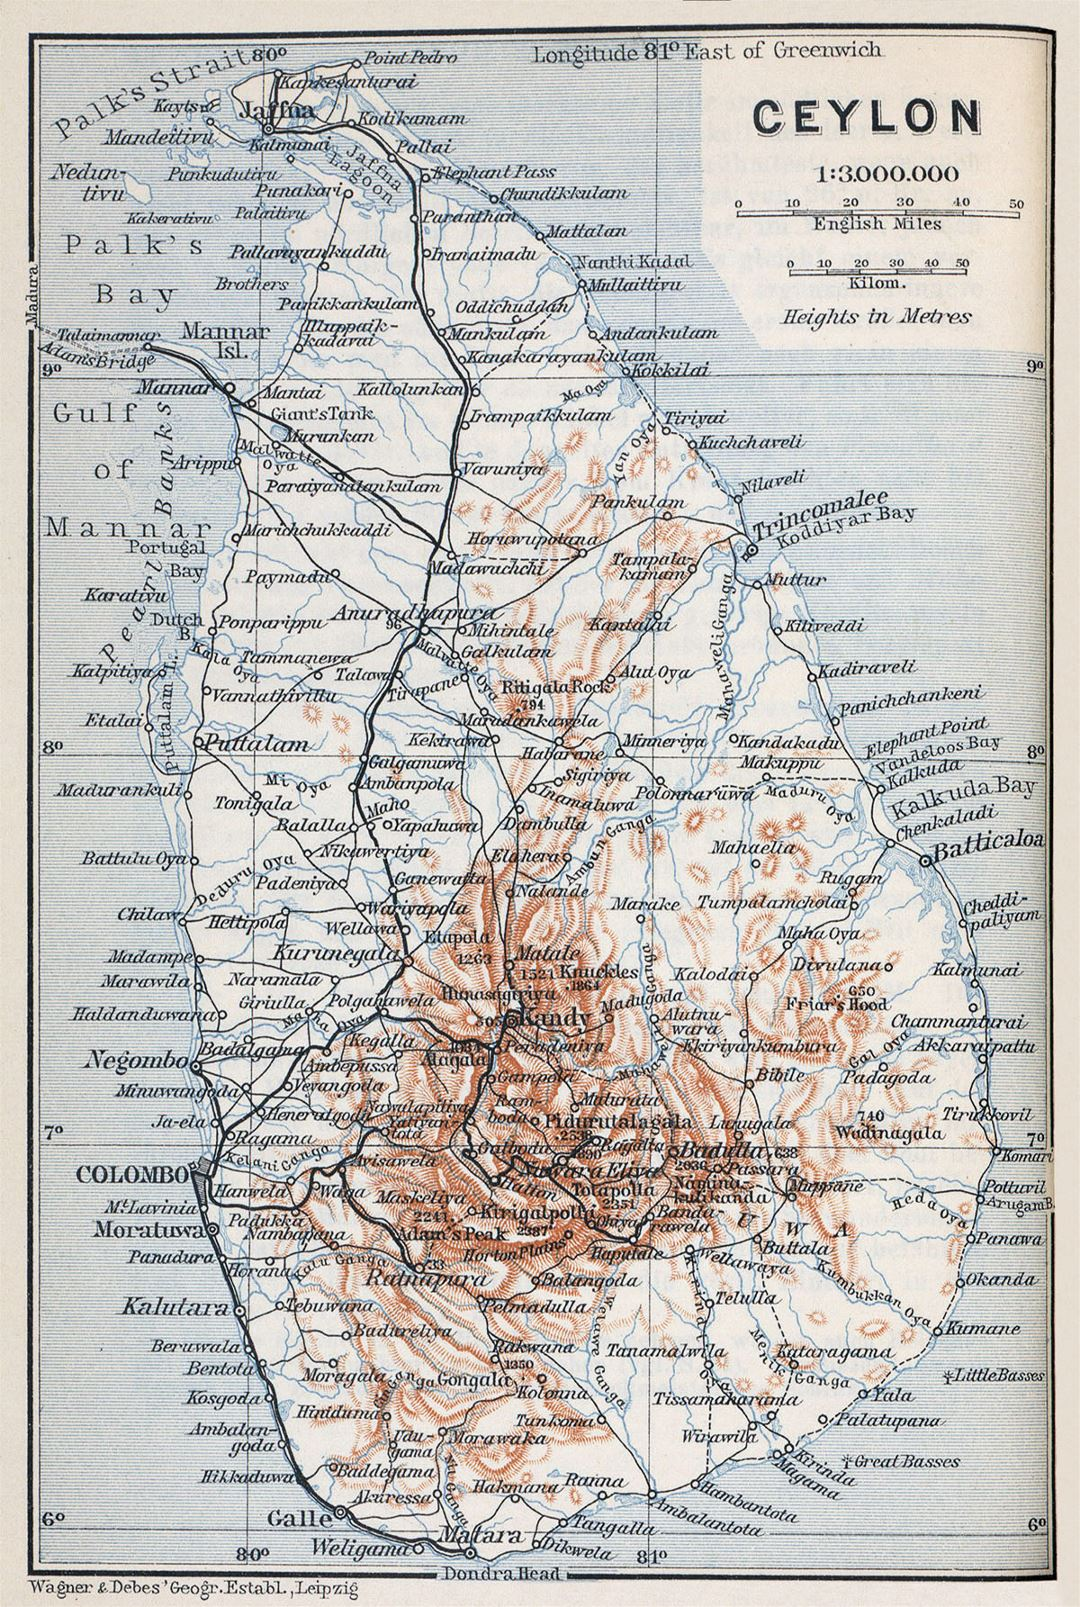 Large old map of Sri Lanka with roads, cities and relief - 1914